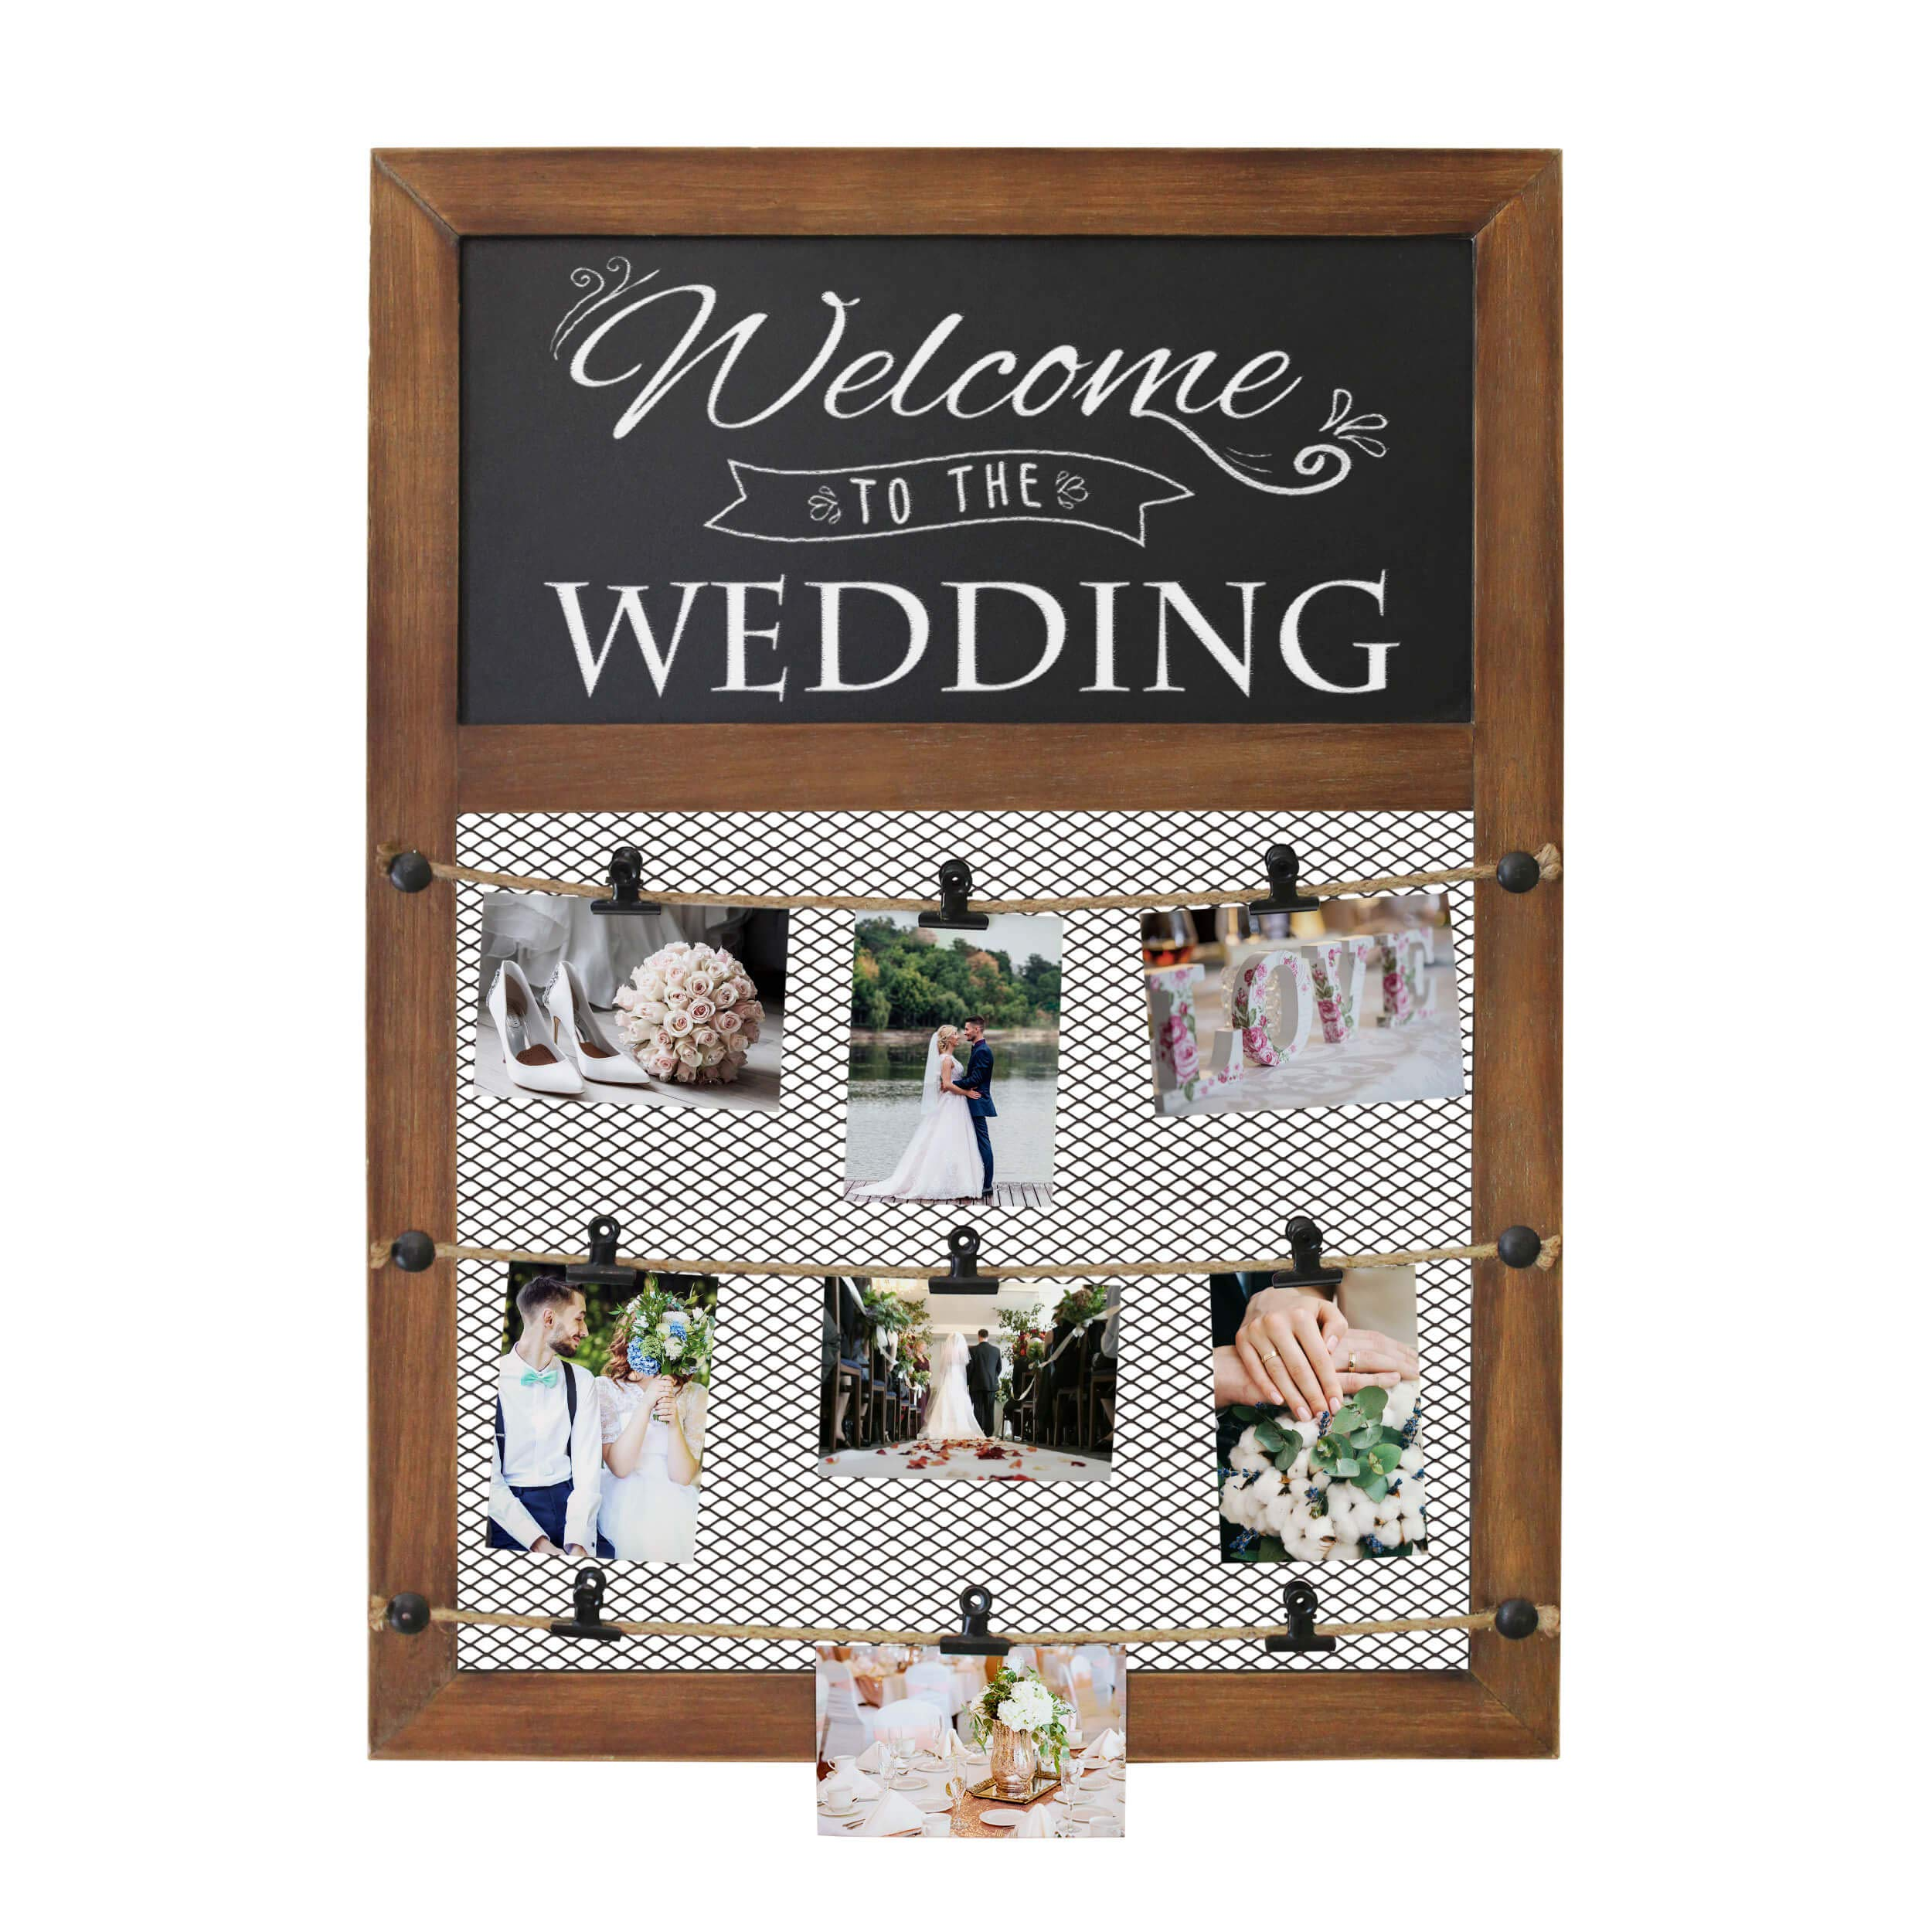 Rustic Wall Mounted Picture Display Frame With Chalkboard Sign & 9 Bulldog Picture Clips - 20x30 Inch Wall Chalkboard With Picture Grid For Displaying picture collage. Photo Board for polaroids & more by HBCY Creations